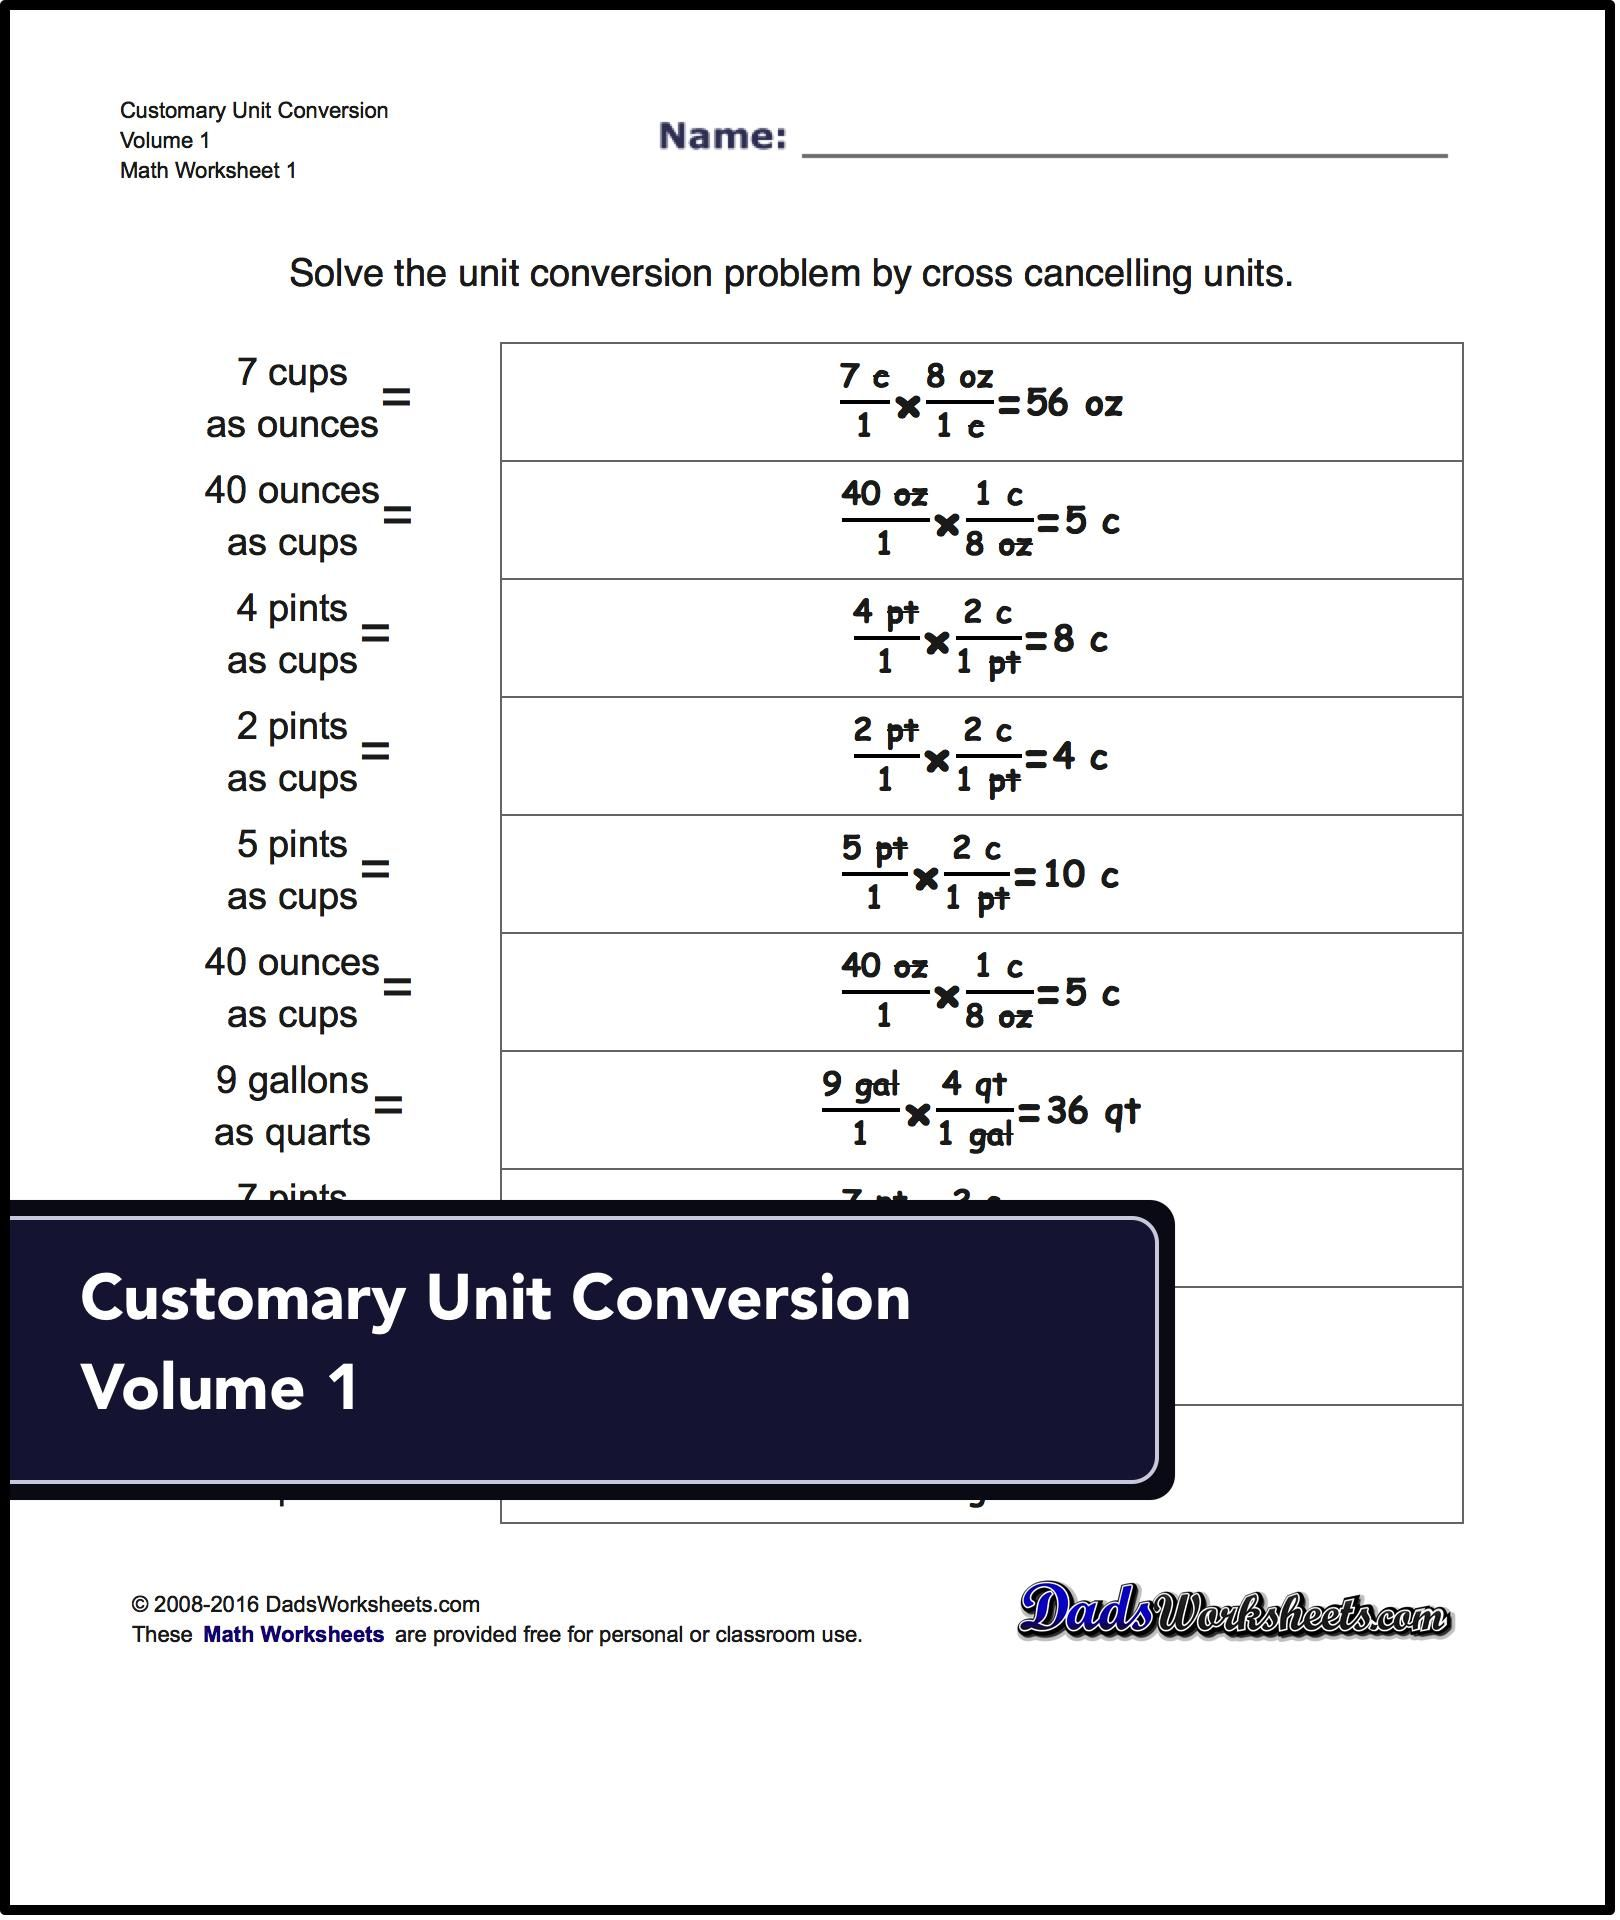 Classified Converting Customary Units Worksheet